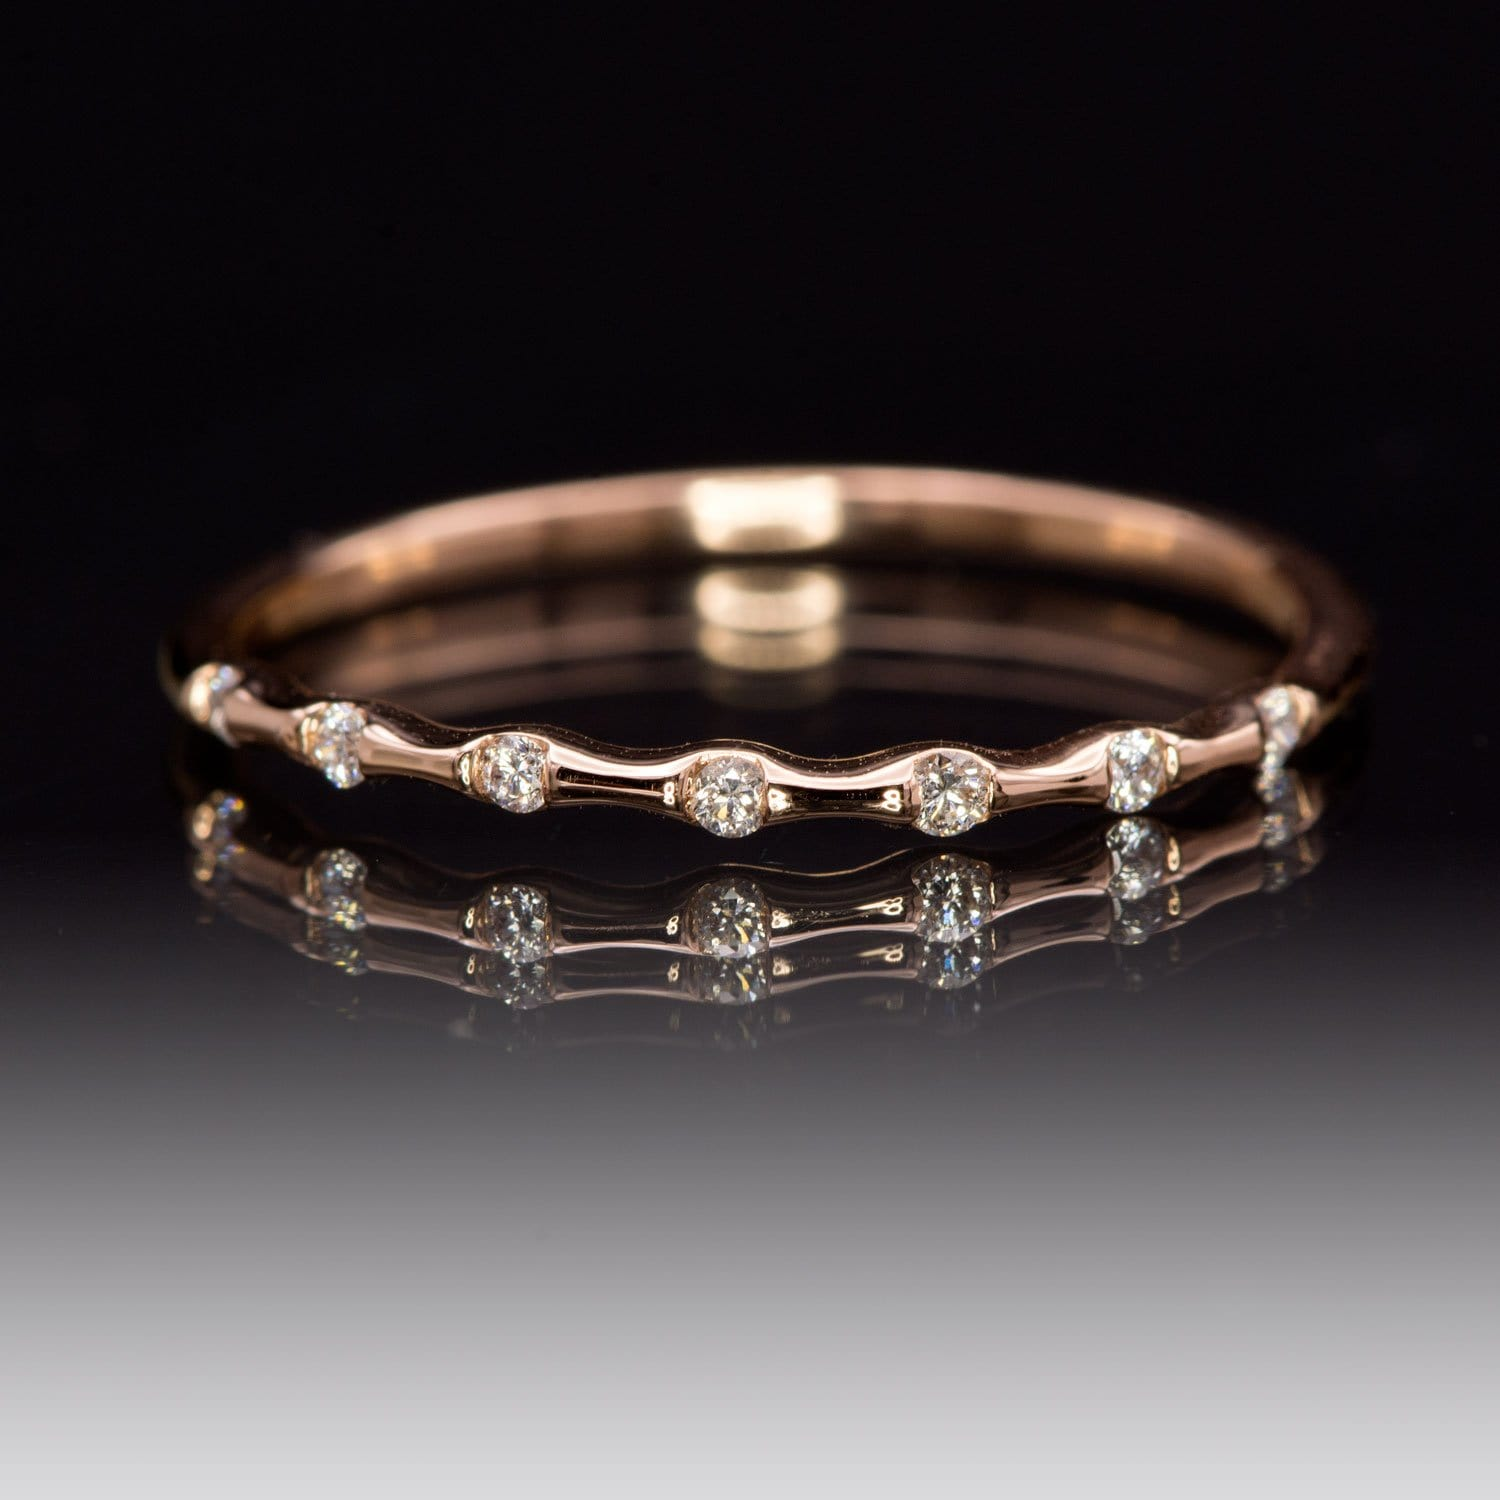 Sadie Band - Skinny Anniversary Band, Bar Set Diamond Half Eternity Stacking Wedding Ring